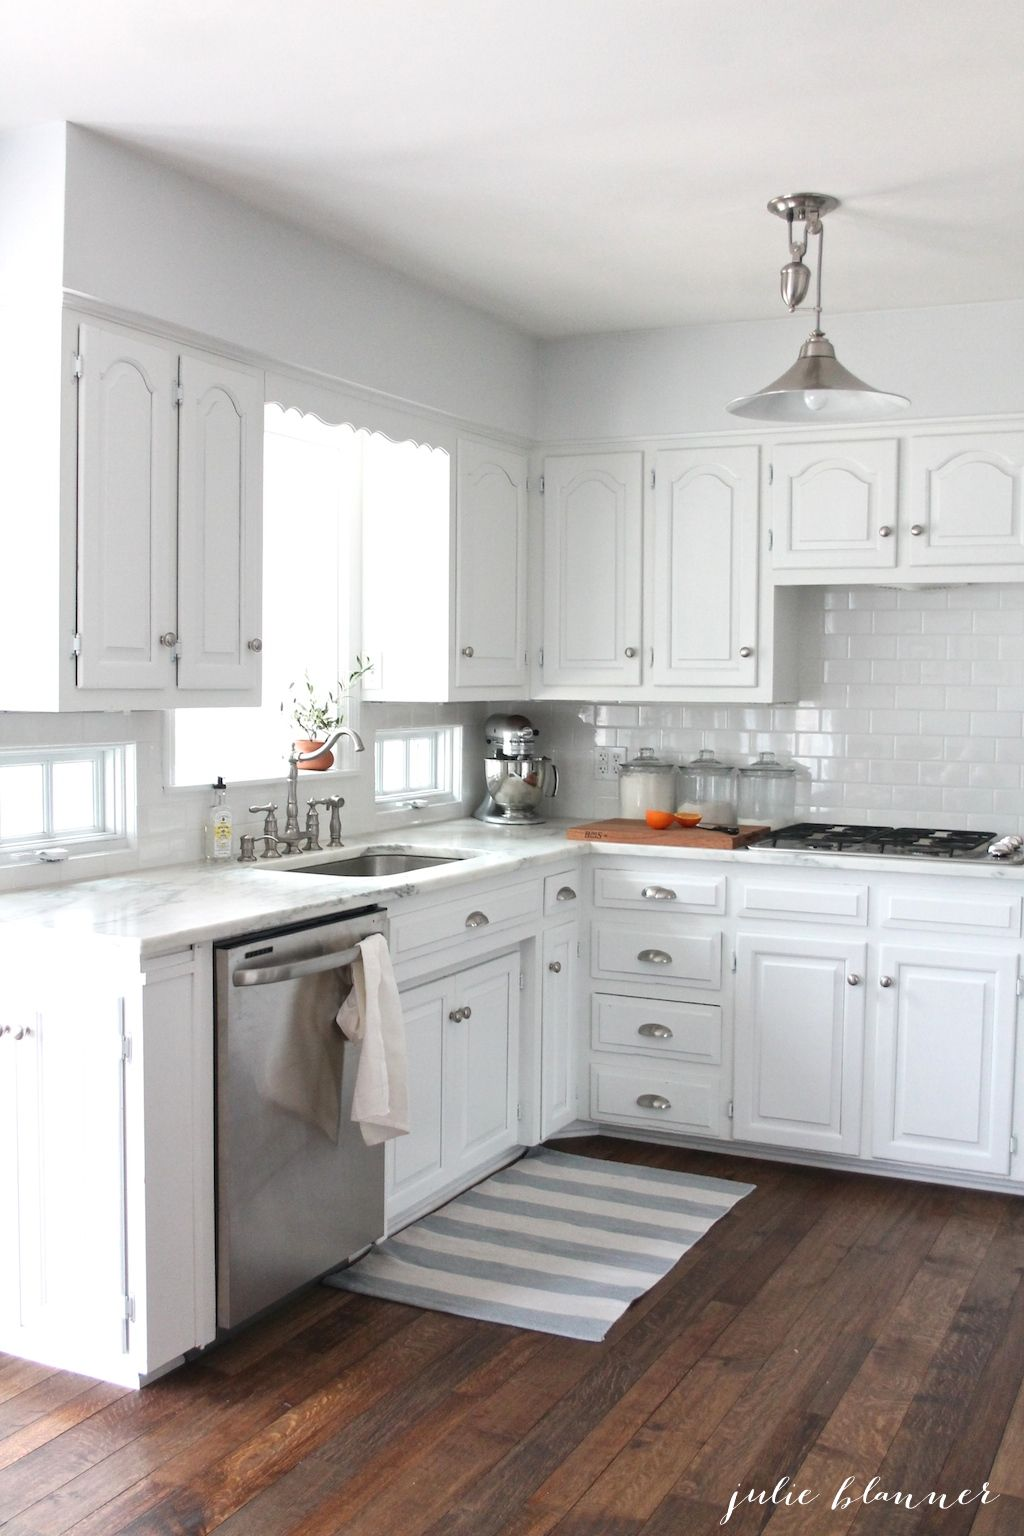 6 Secrets Real Estate Agents Know About Kitchen Remodels/ love the floor